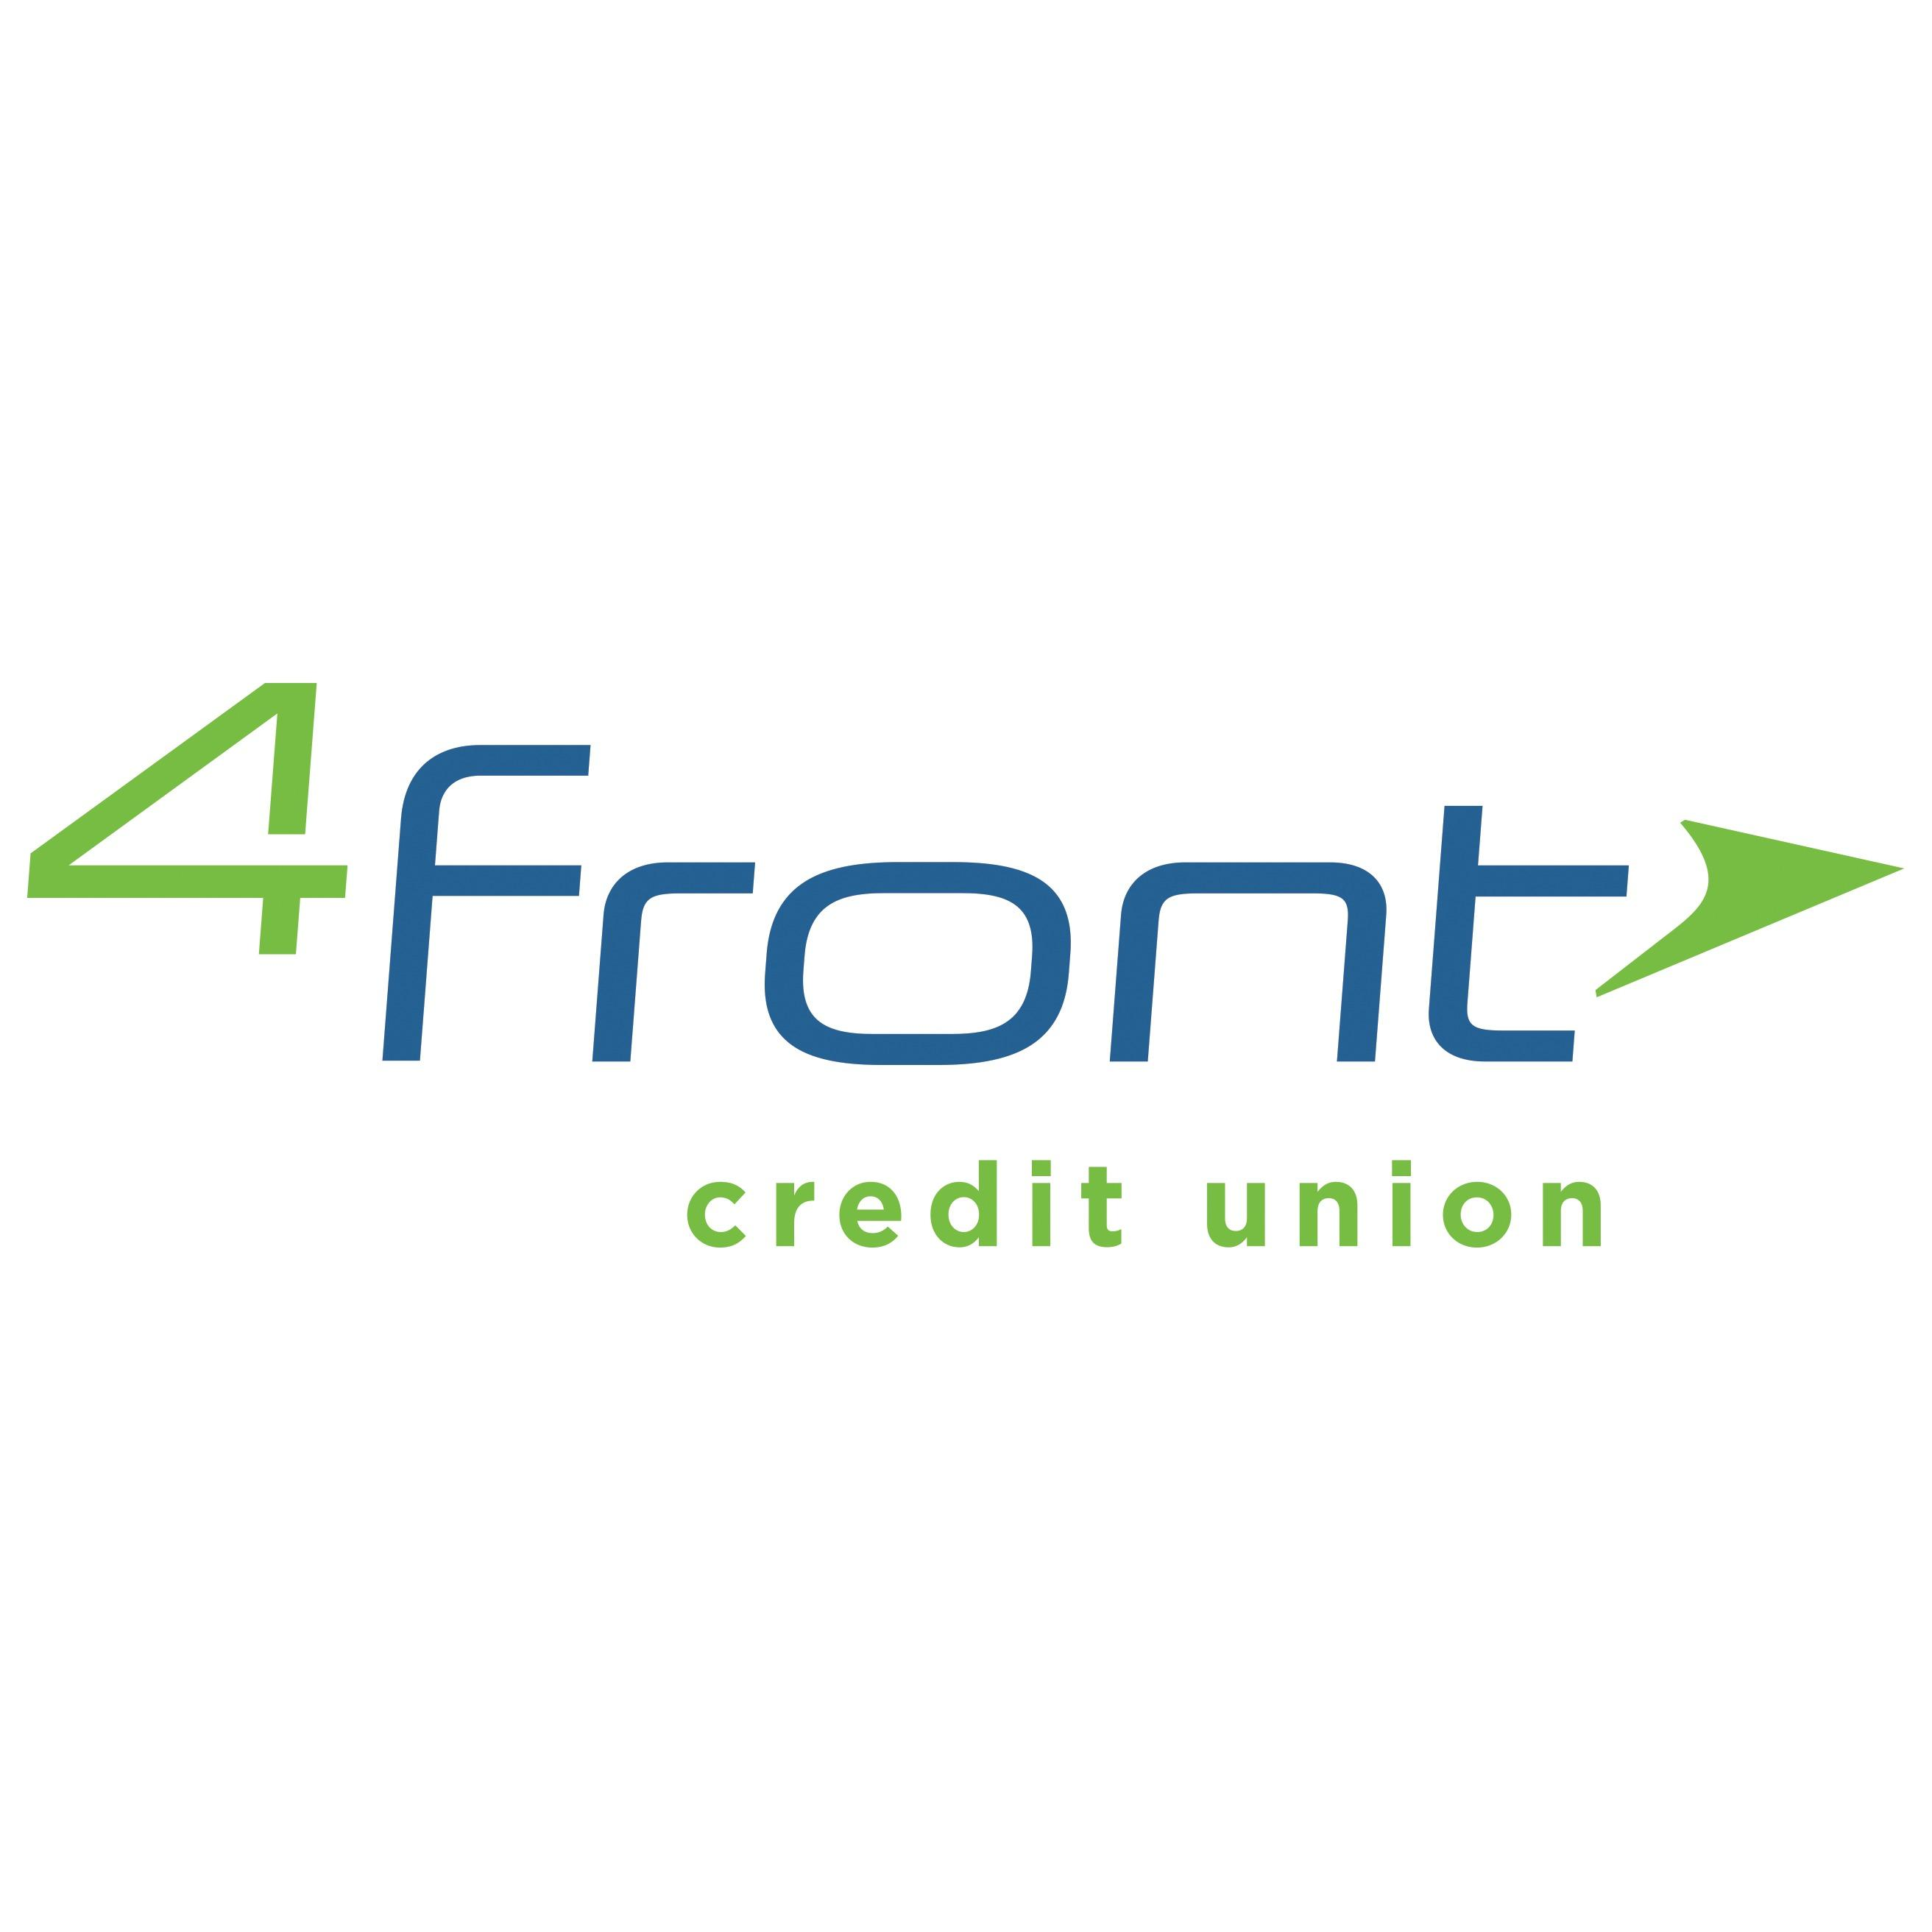 4Front Credit Union - Traverse City, MI 49684 - (800)765-0110 | ShowMeLocal.com